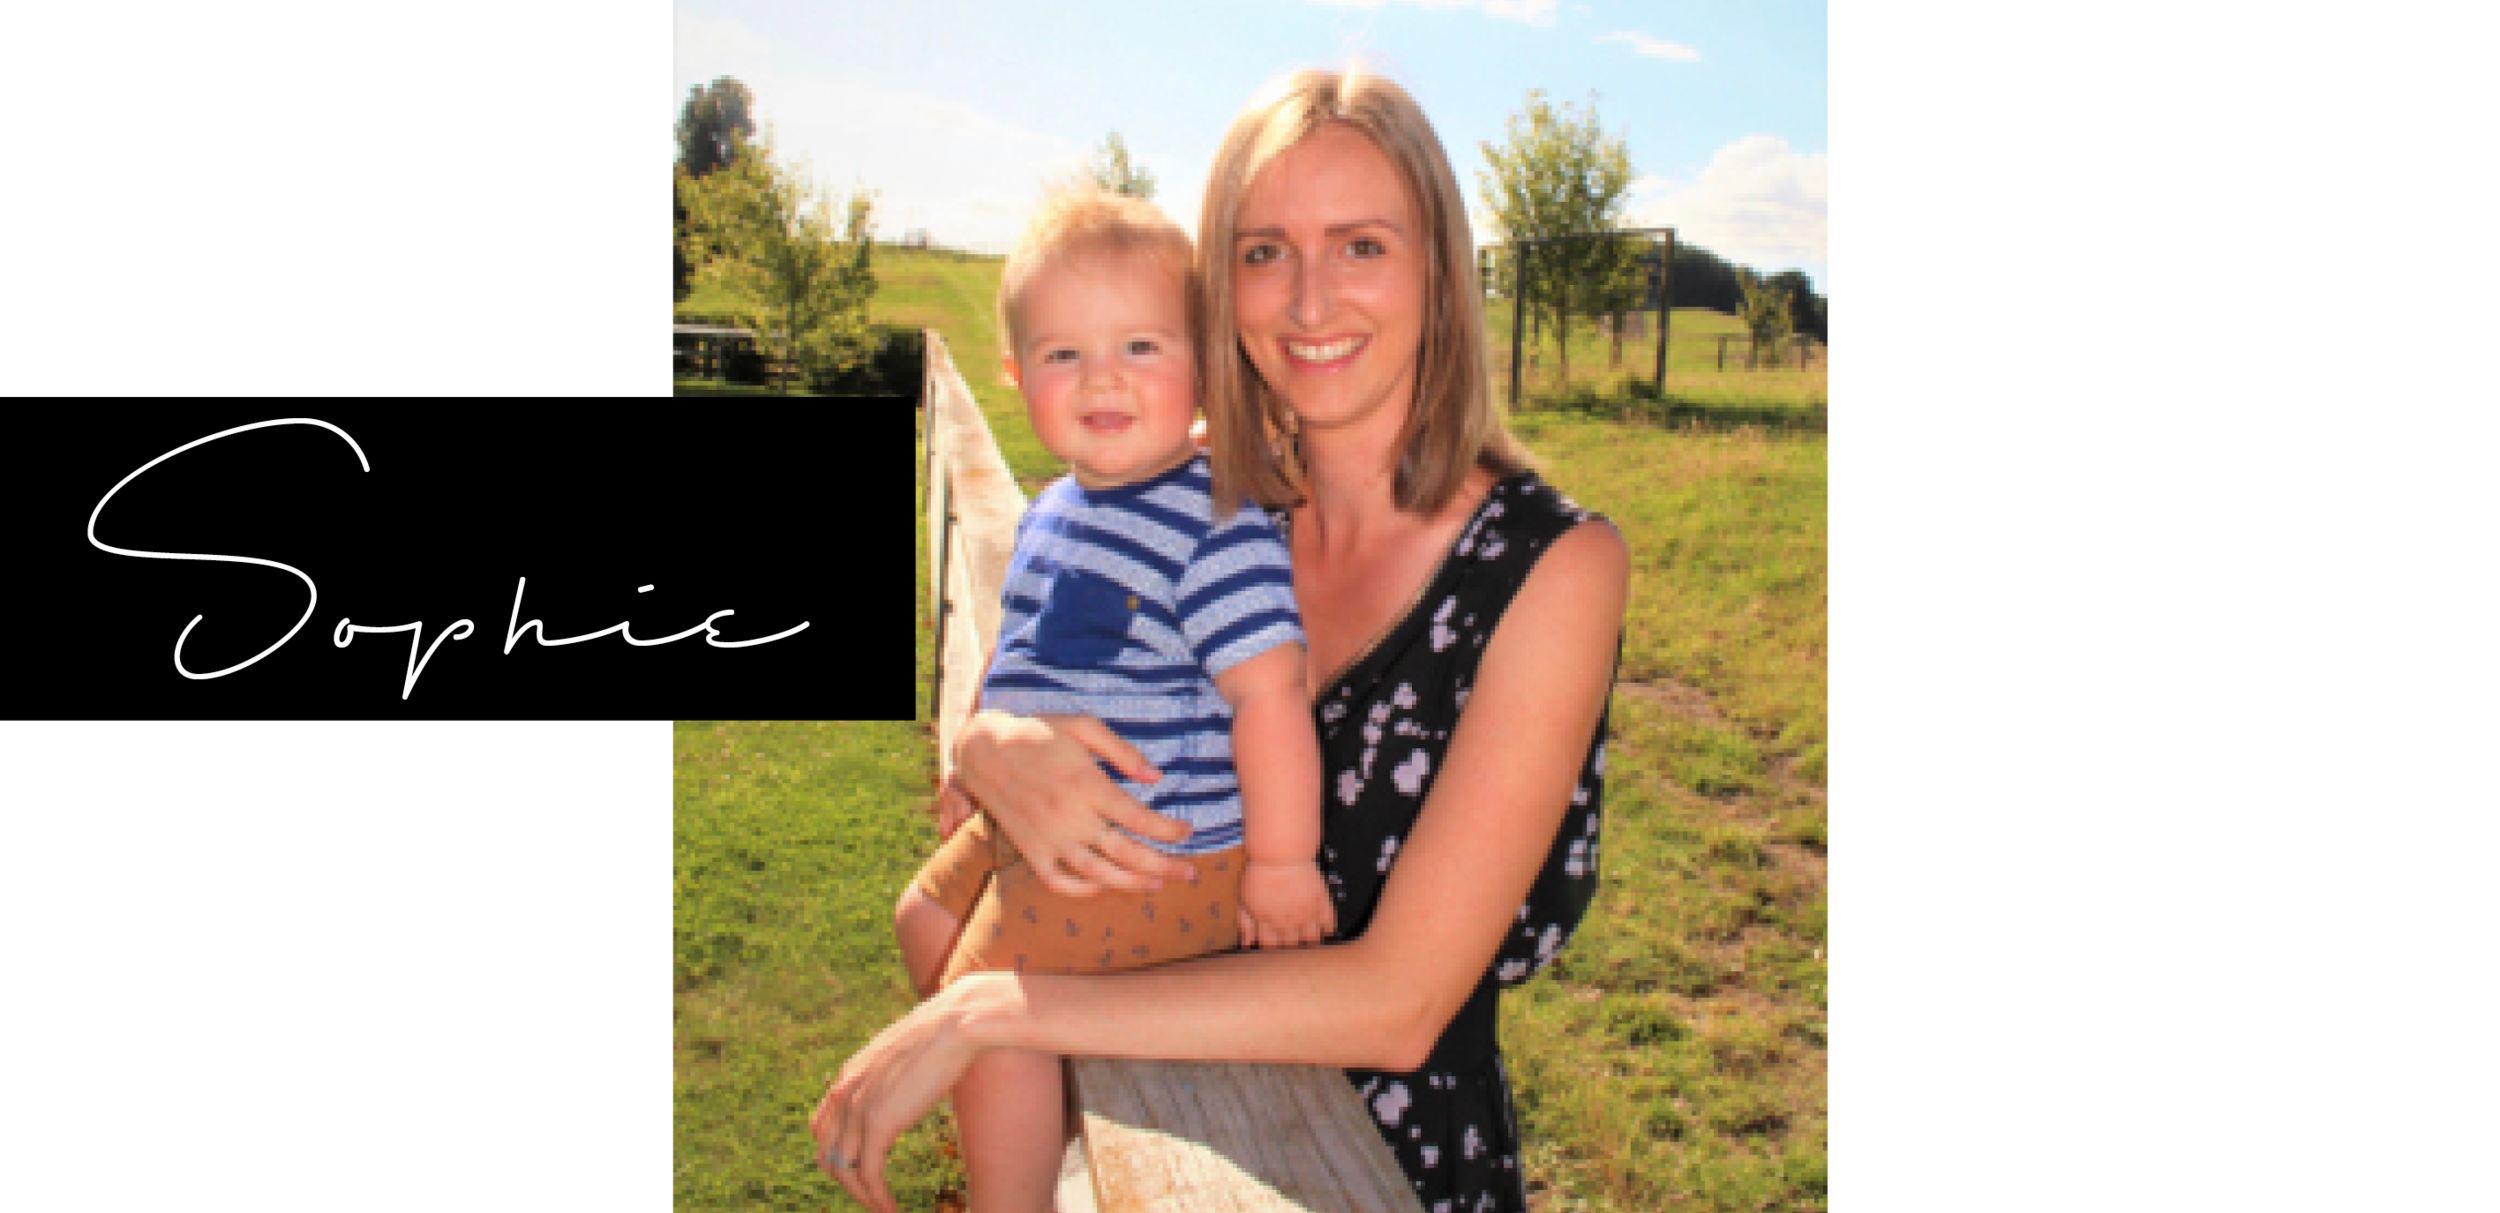 SOPHIE PALMER   This business opportunity came along at the perfect time for me. My son was 5 months old and I had just resigned from my teaching job as I couldn't imagine going back to work and putting our little boy in care. This just was not an option in my mind, I didn't have a baby so someone else could raise him.  I was thinking I would end up doing some relief teaching and eventually go back into full time teaching after a few years of raising our children - this really pained me as I have always wanted to be a stay at home mum and be there for my children like my mum was there for us as kids (my parents were farmers so were home for our whole childhood).  The future is so much brighter for me now that I am part of this supportive and inspiring tribe of women. I love that I can stay home and not miss precious moments with my boy. It has turned into a real passion of mine, not only enabling myself to live my dream lifestyle but also making it possible for other mums to do the same. I thoroughly enjoy guiding and mentoring like minded women and watching them grow and achieve goals on the path to living life on their own terms.  After all, do we want to live to work or work to live?